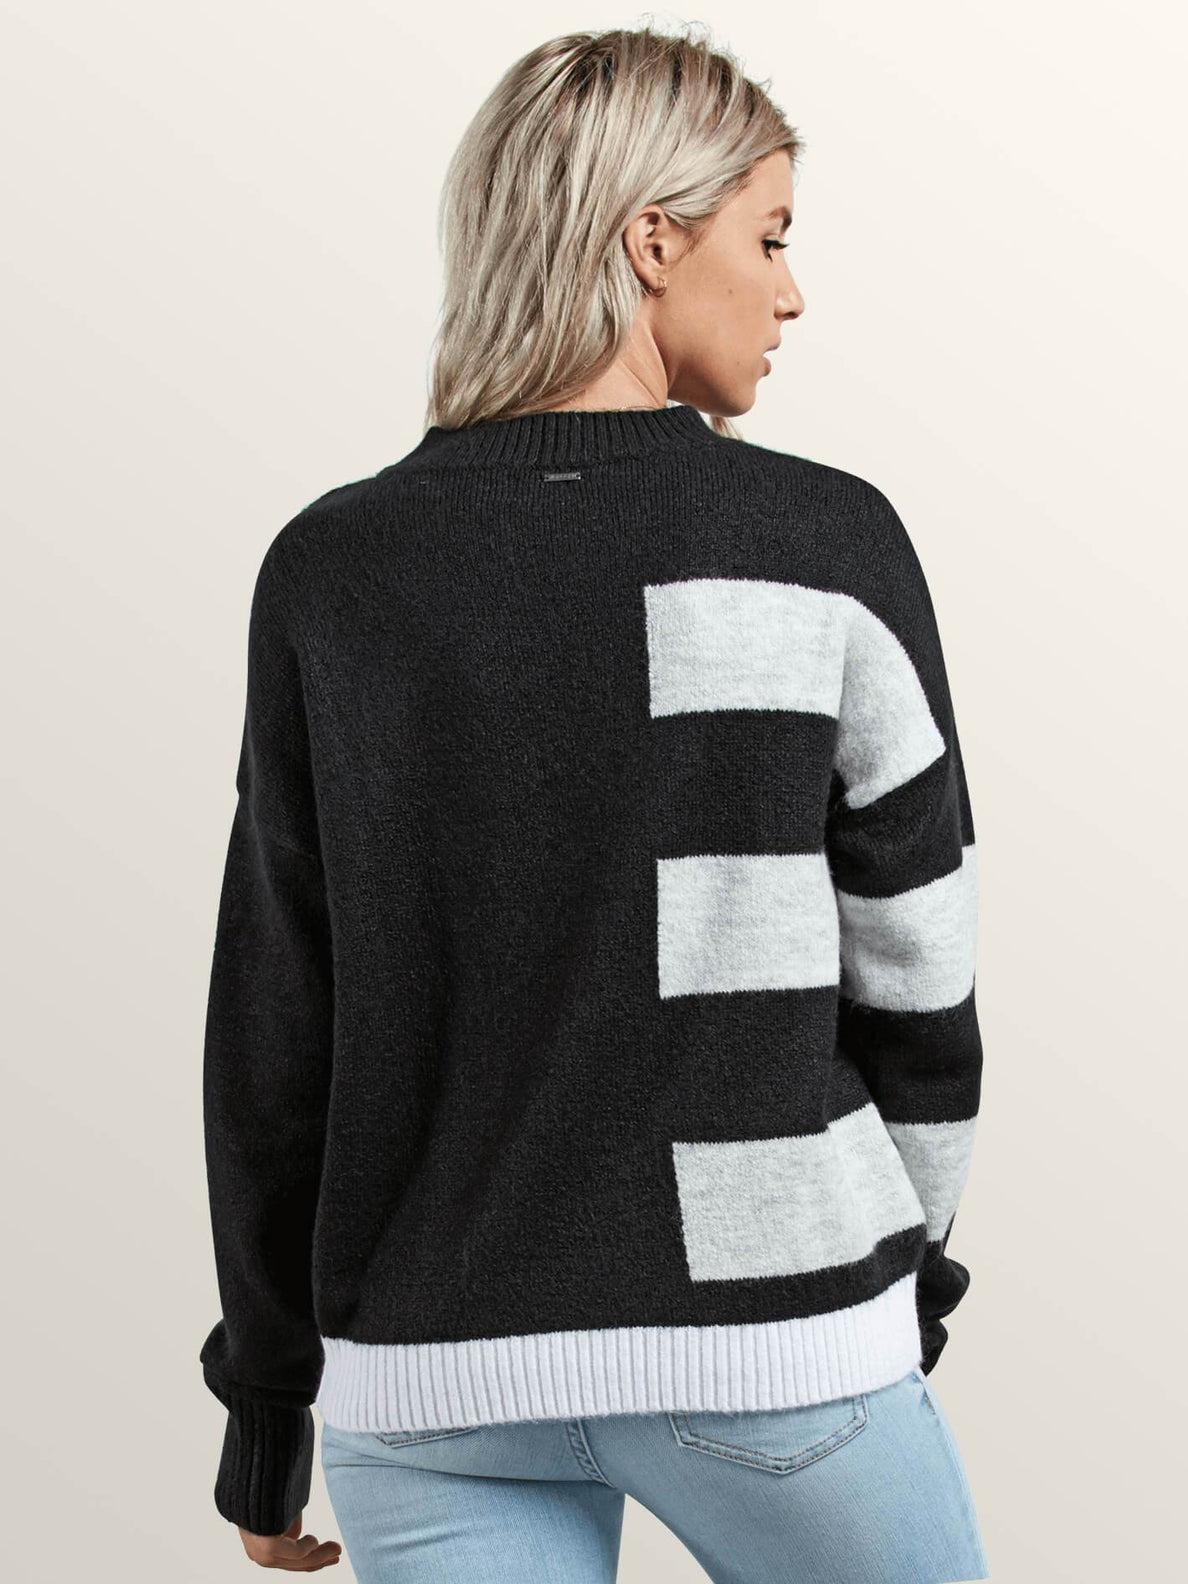 Cold Band Sweater In Black, Back View